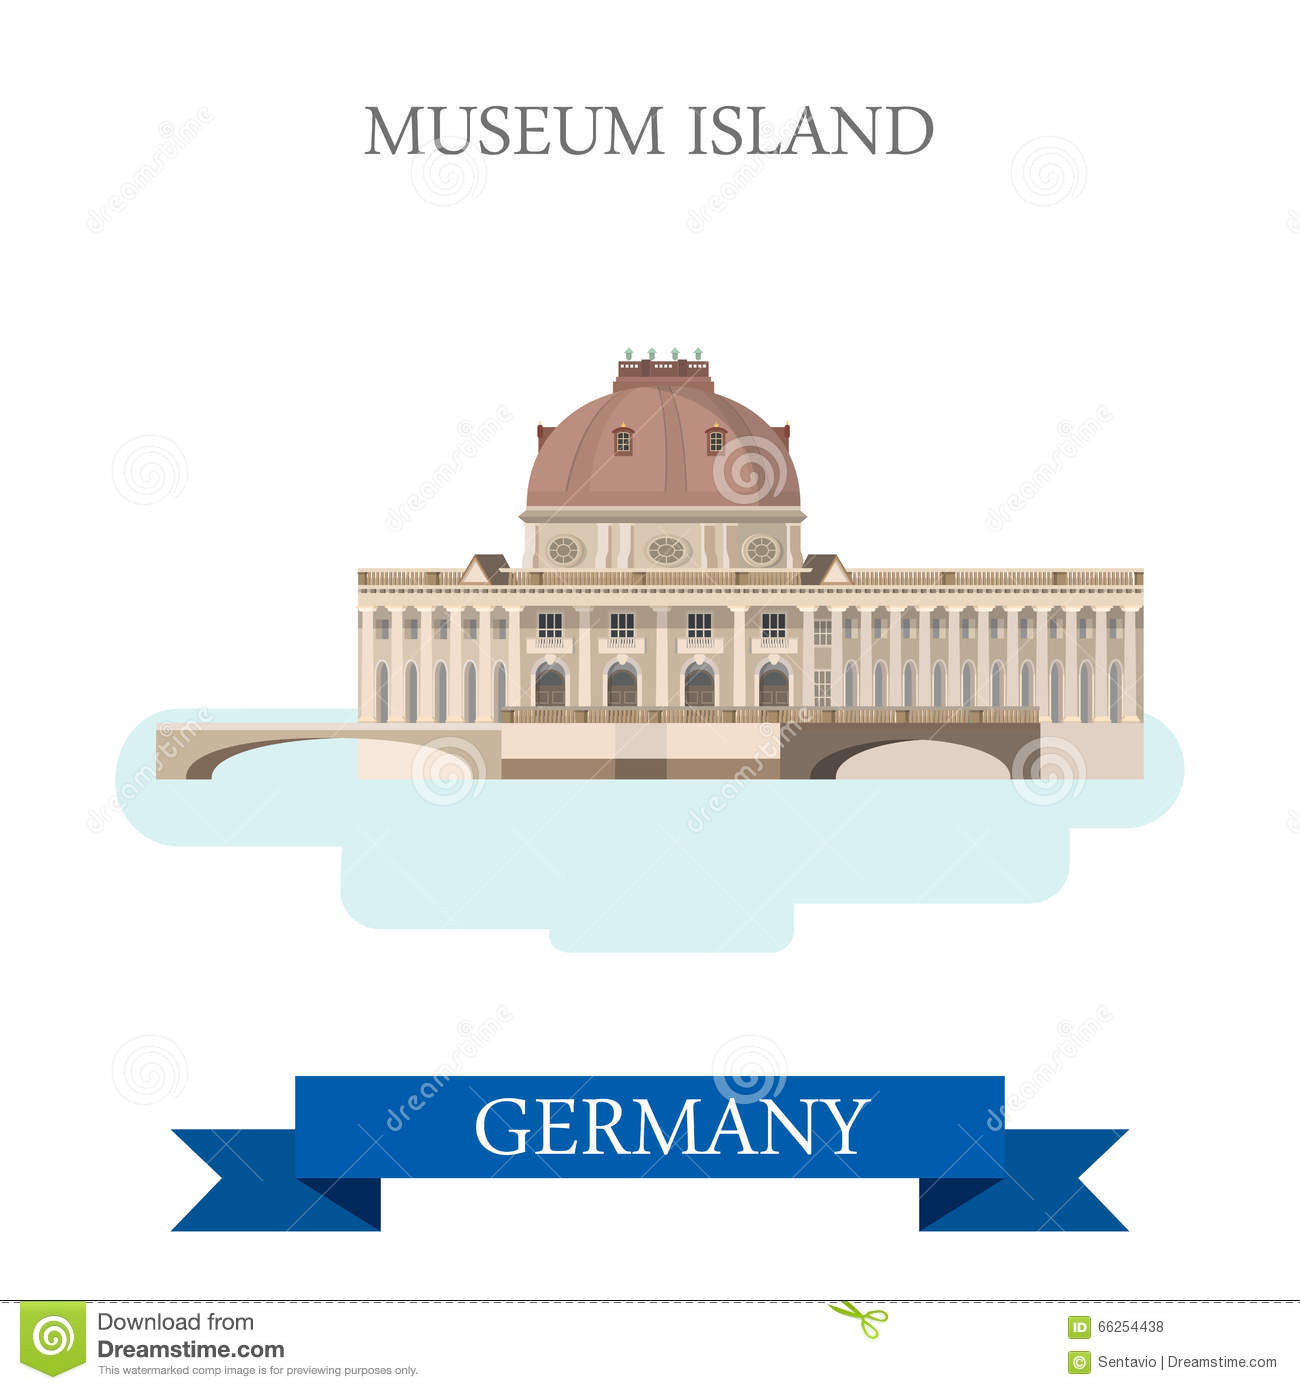 Museum Island Berlin Germany Flat Vector Attraction Landmark Stock.